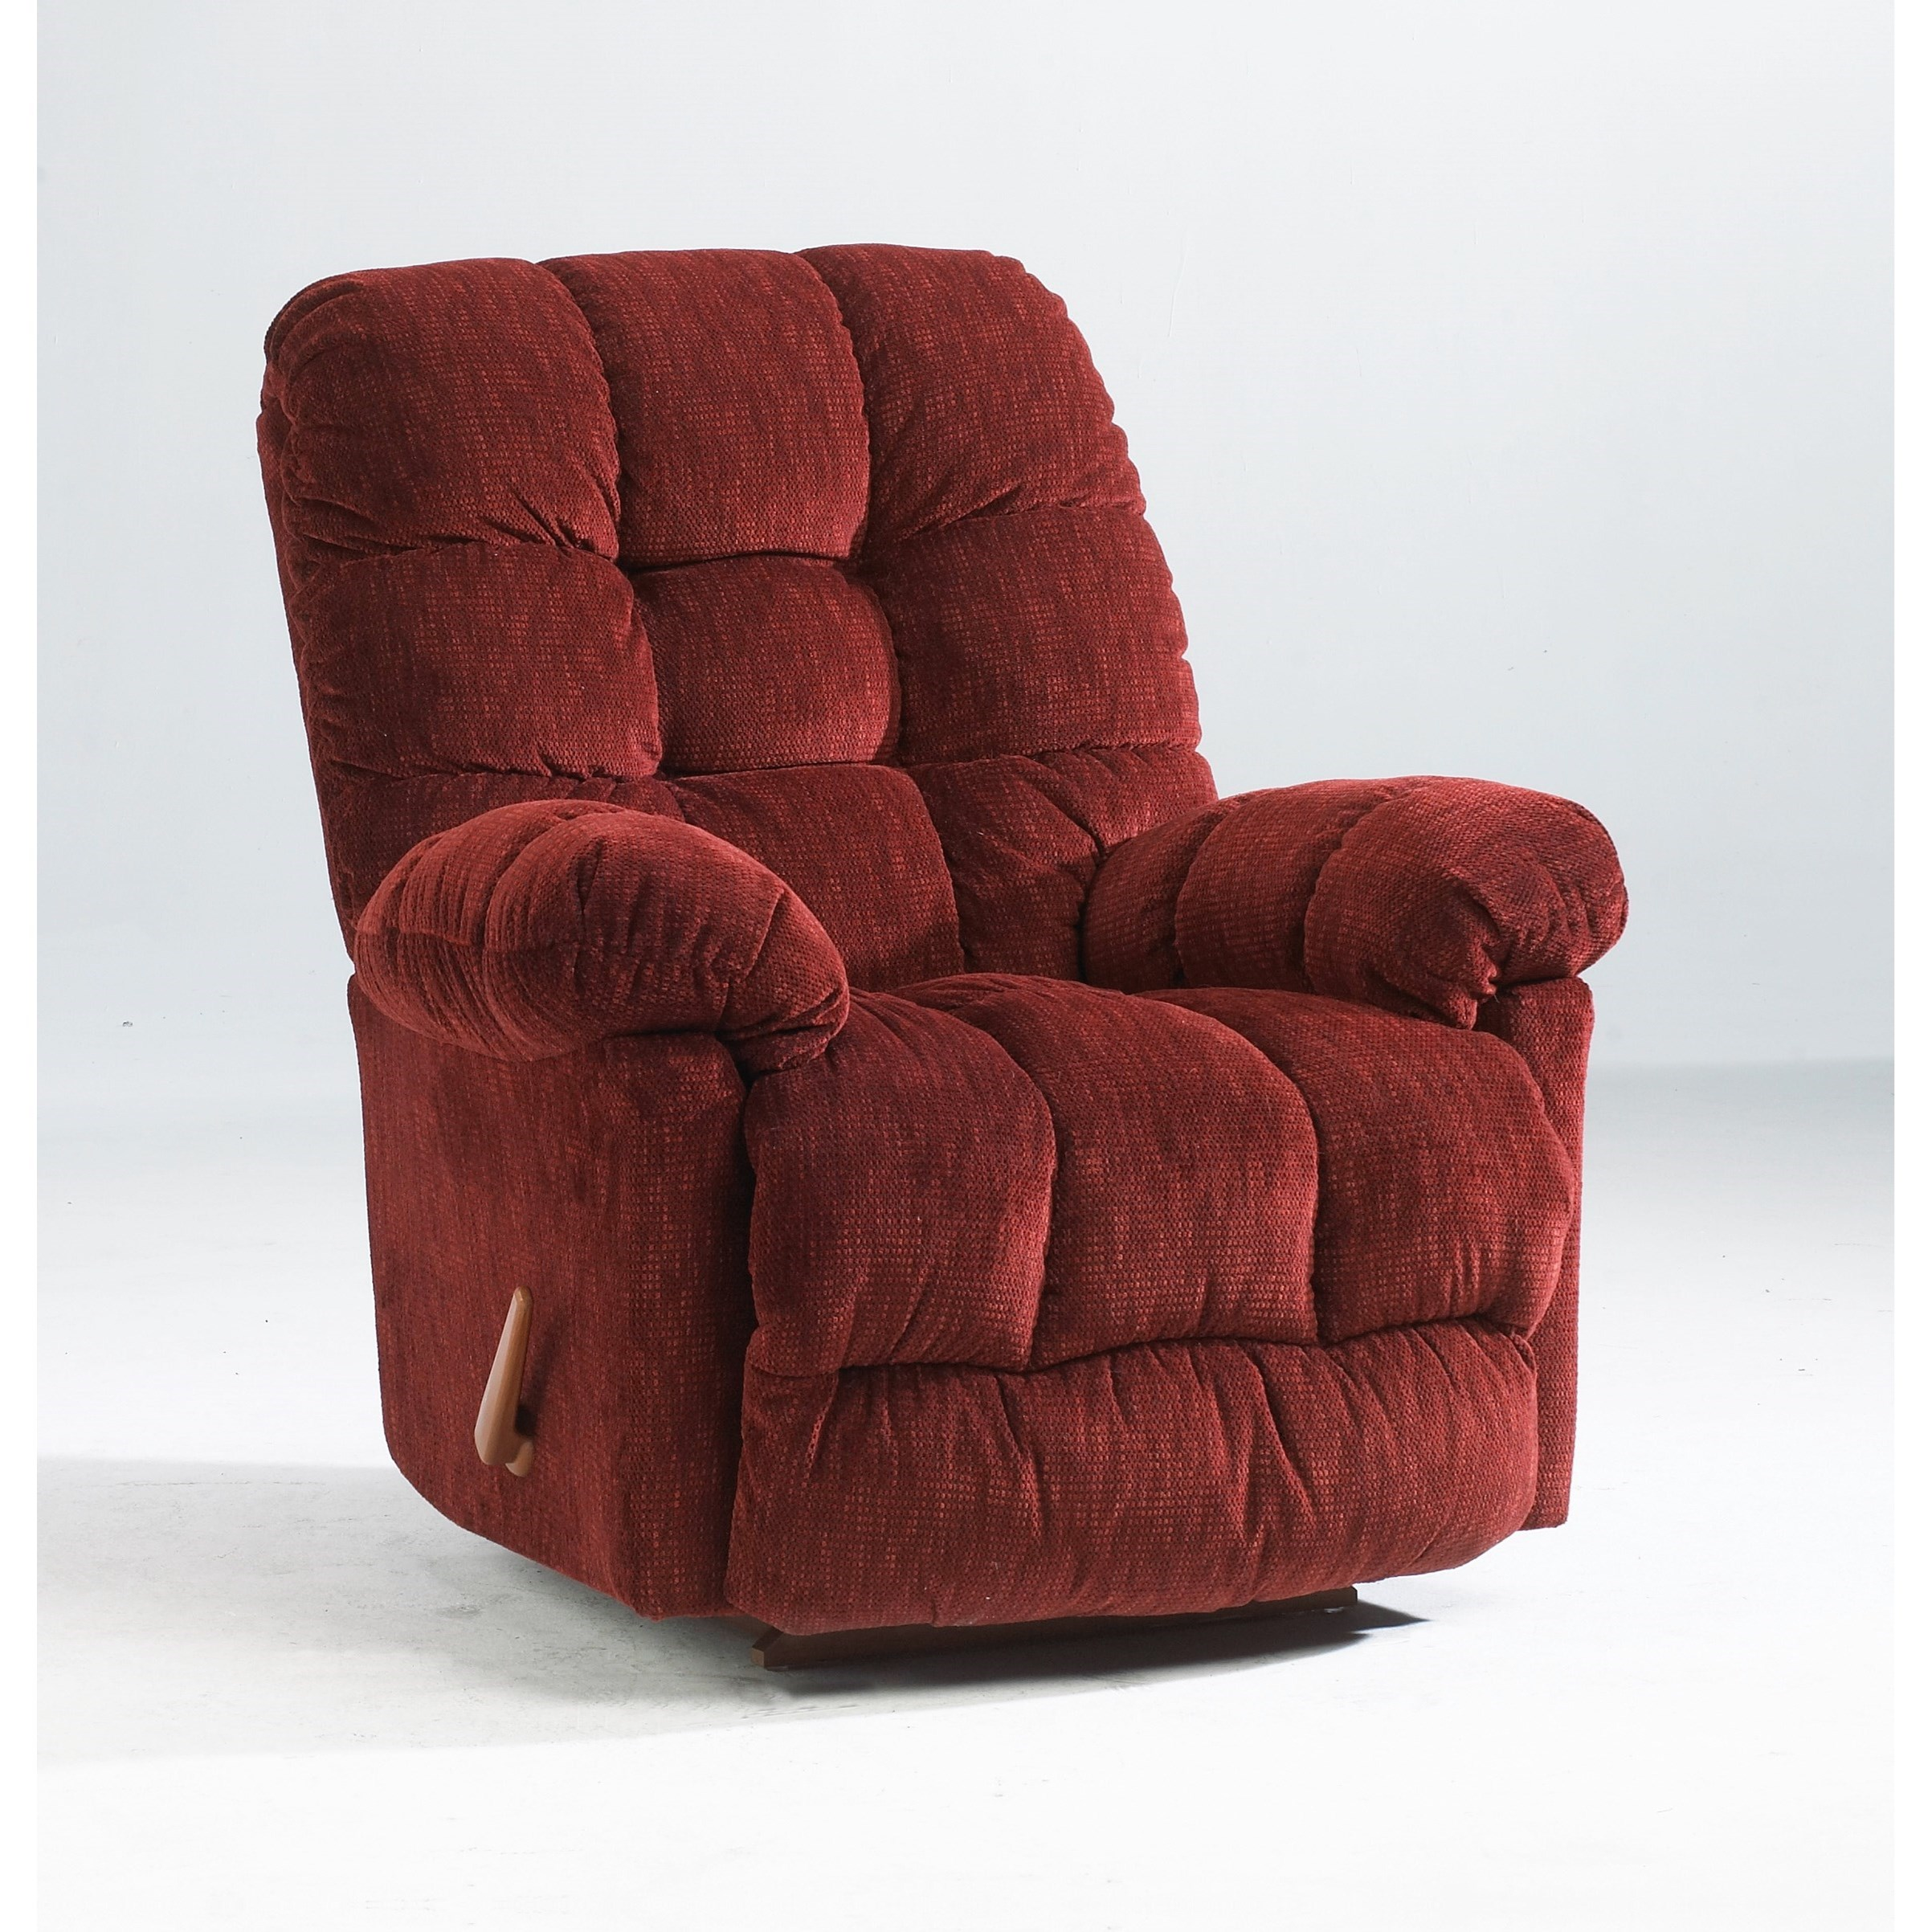 Medium Recliners Brosmer Swiv Gldr Recliner w/ Massage and Ht by Best Home Furnishings at Baer's Furniture